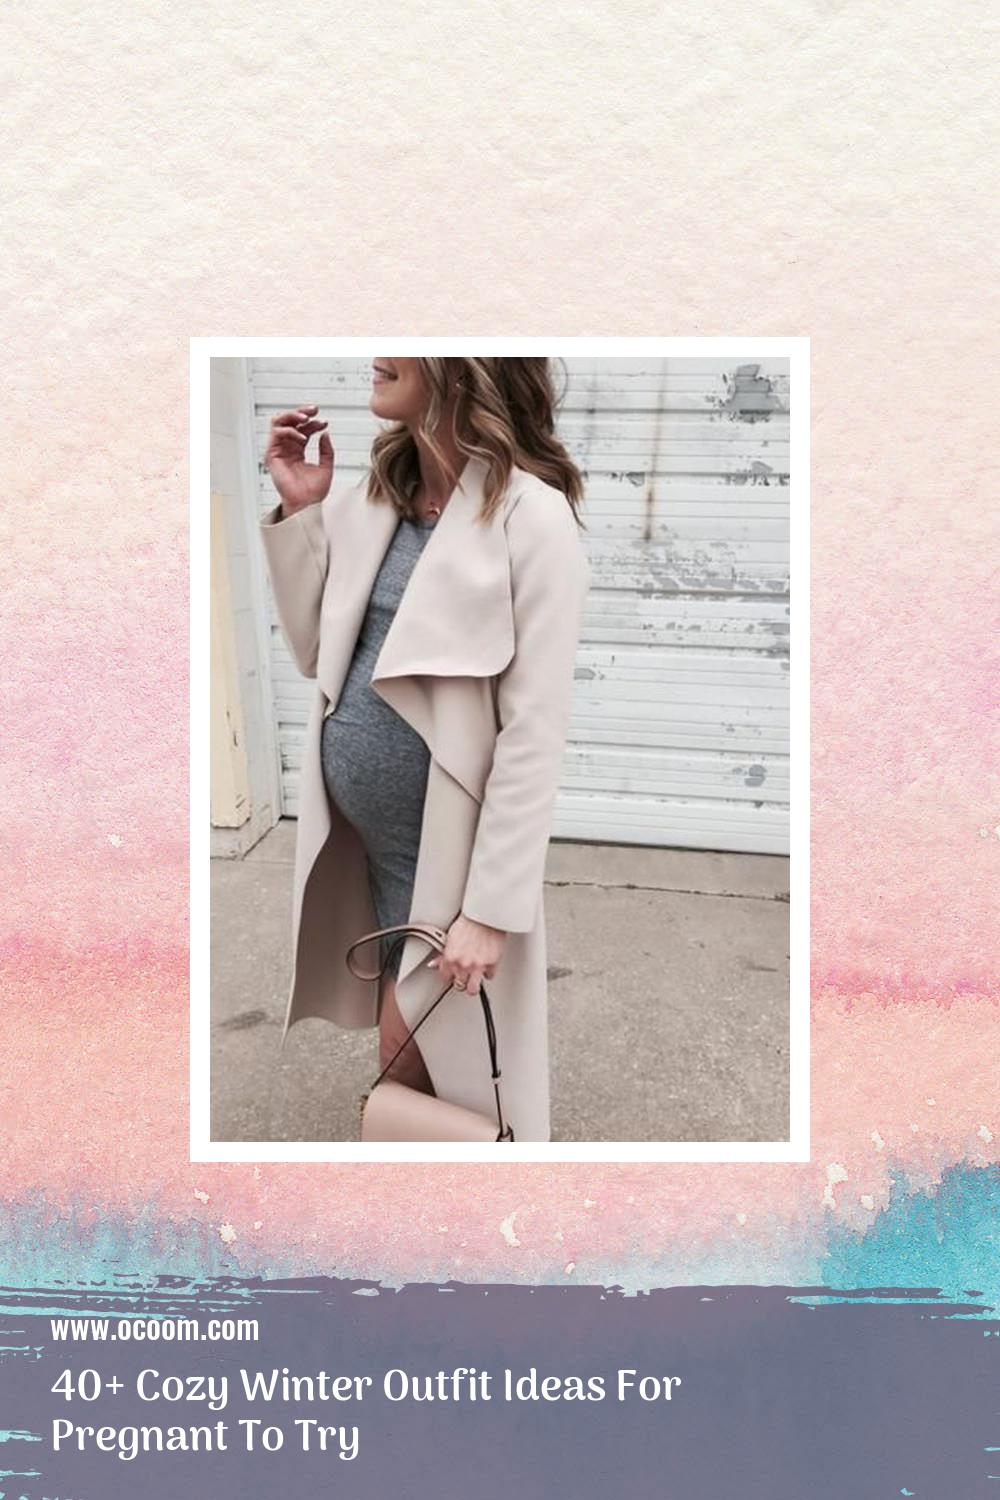 40+ Cozy Winter Outfit Ideas For Pregnant To Try 38